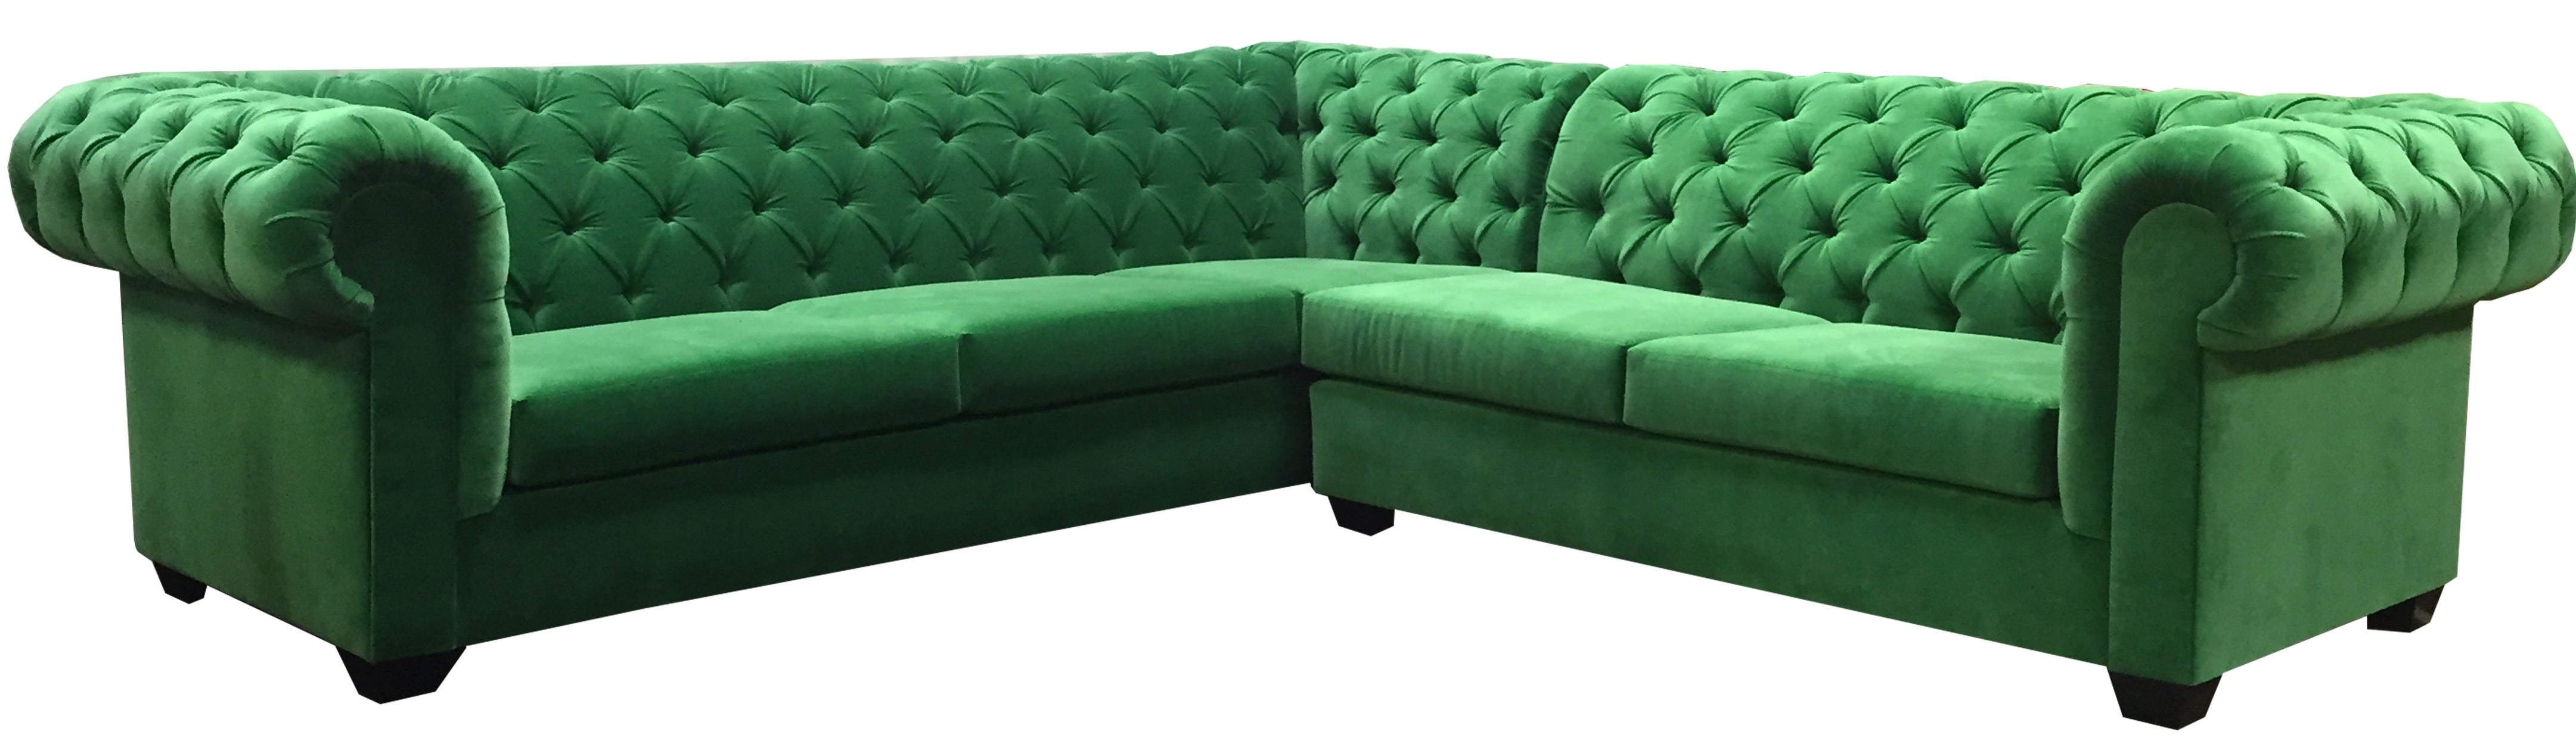 Kelly Green 'l' Sectional – Velvet – Designer8 Intended For Latest Green Sectional Sofas (View 11 of 20)